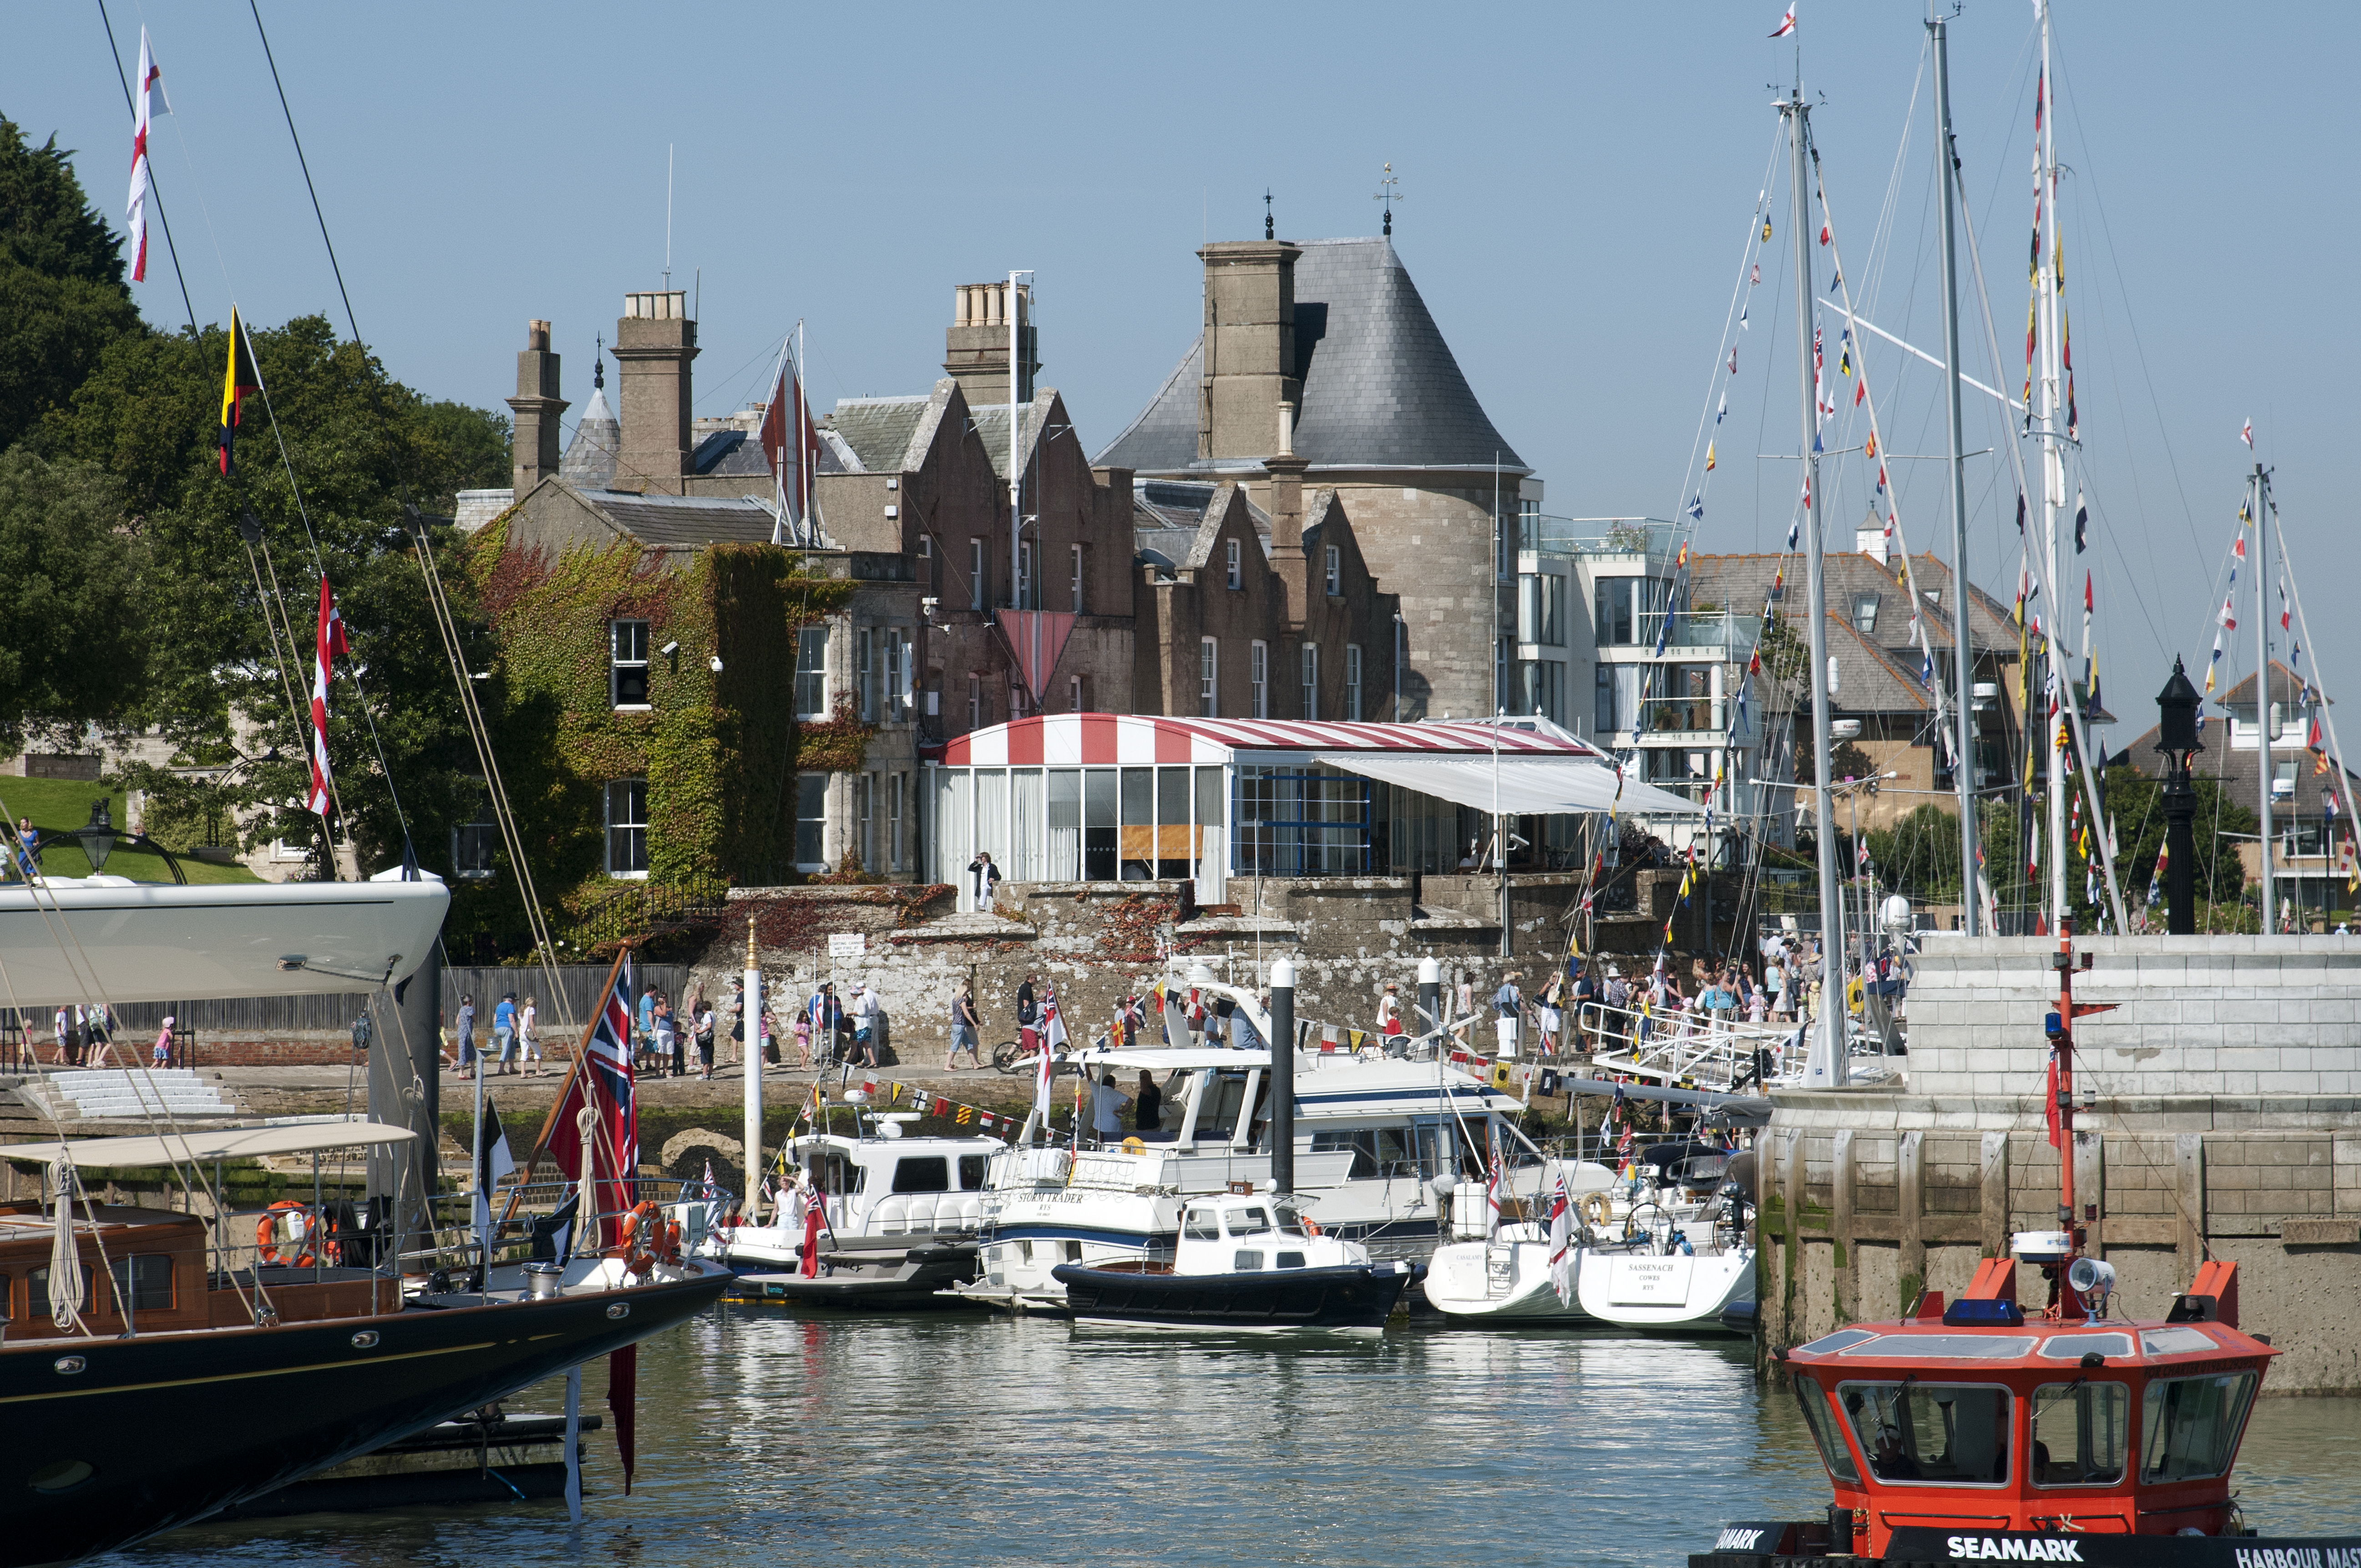 Travel in style to Cowes Week 2018